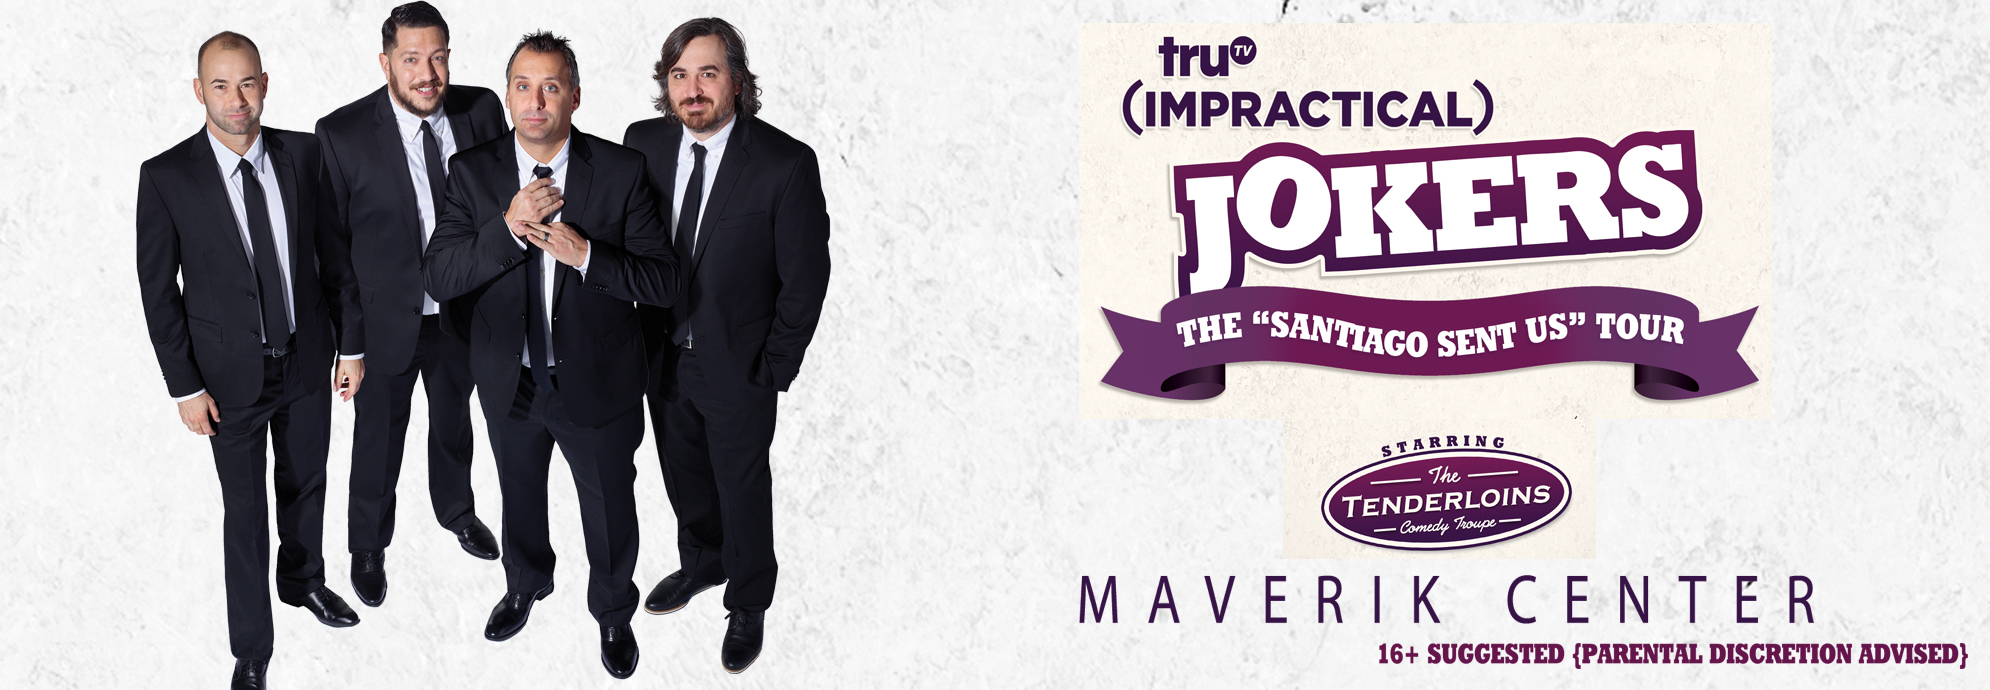 truTV Impractical Jokers 'Santiago Sent Us'